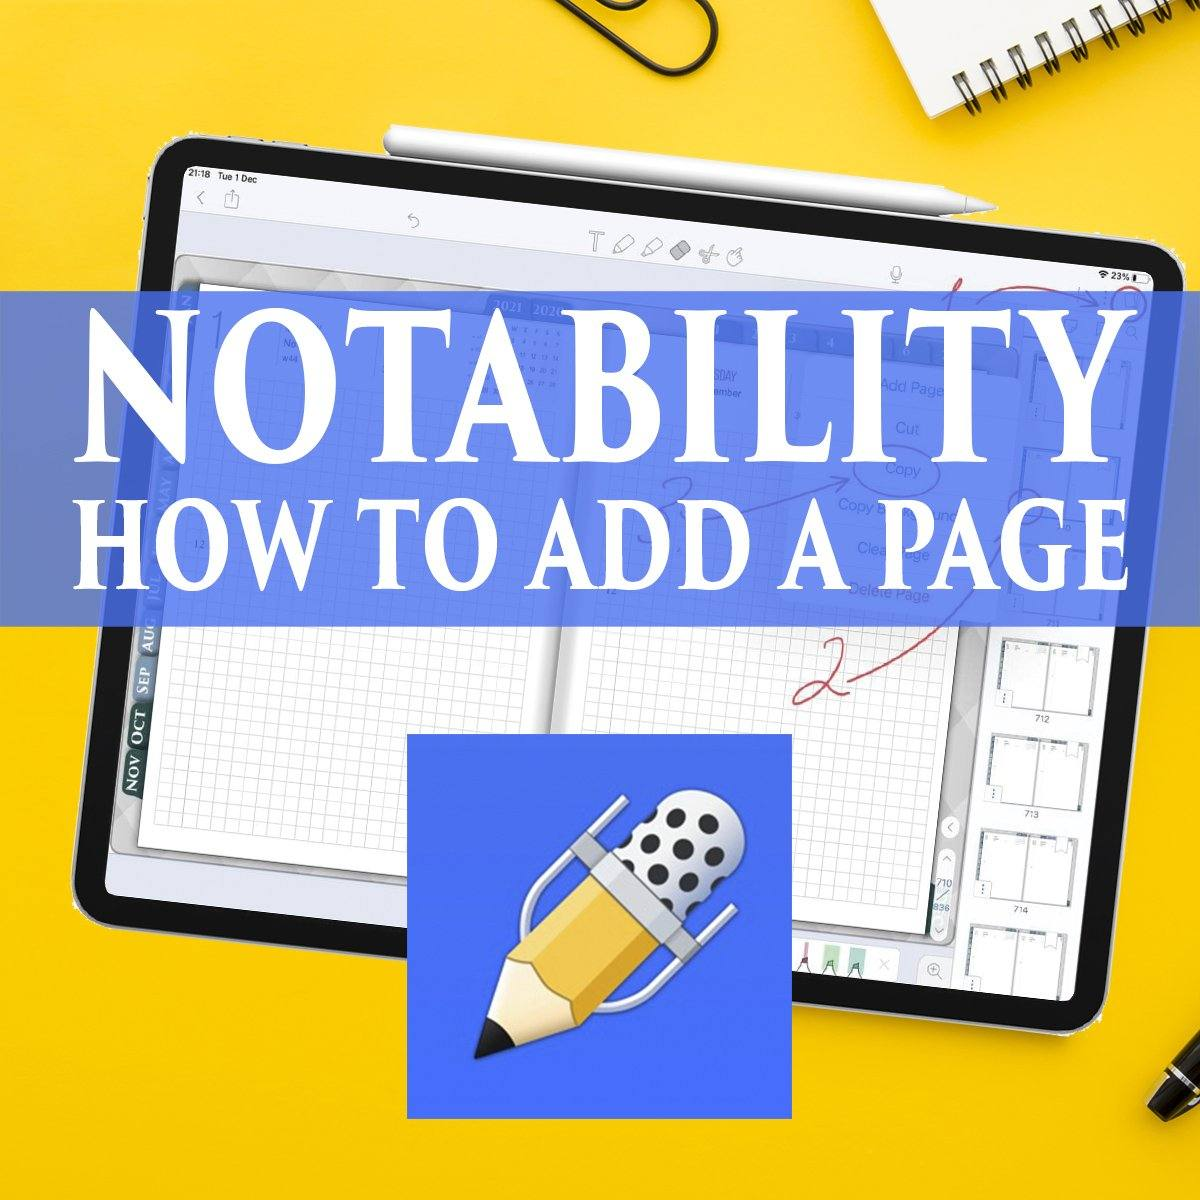 Notability How To Add a Page or Duplicate pages